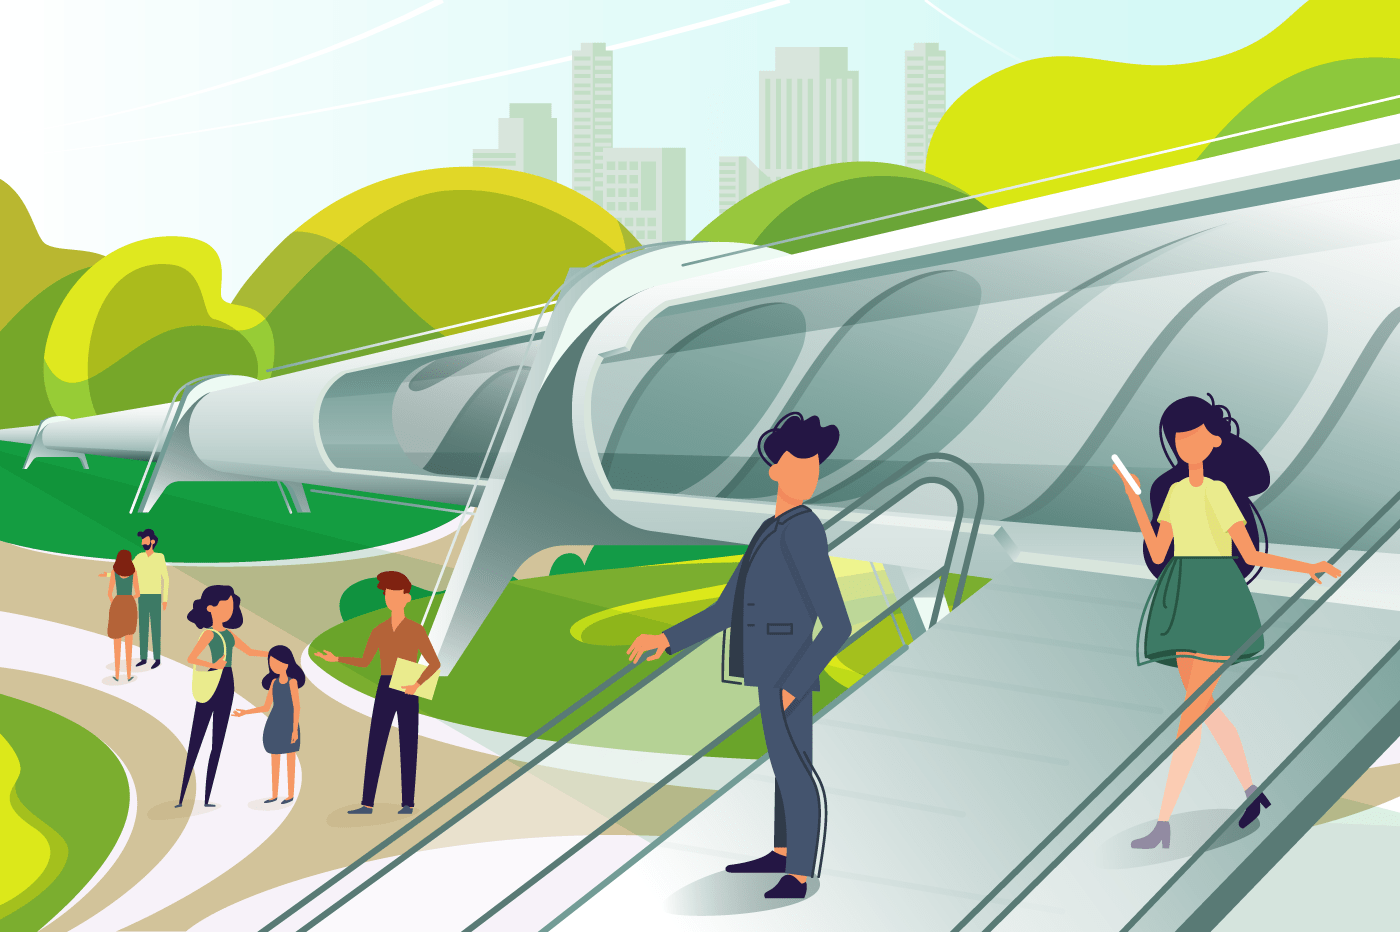 Hyperloop station with people